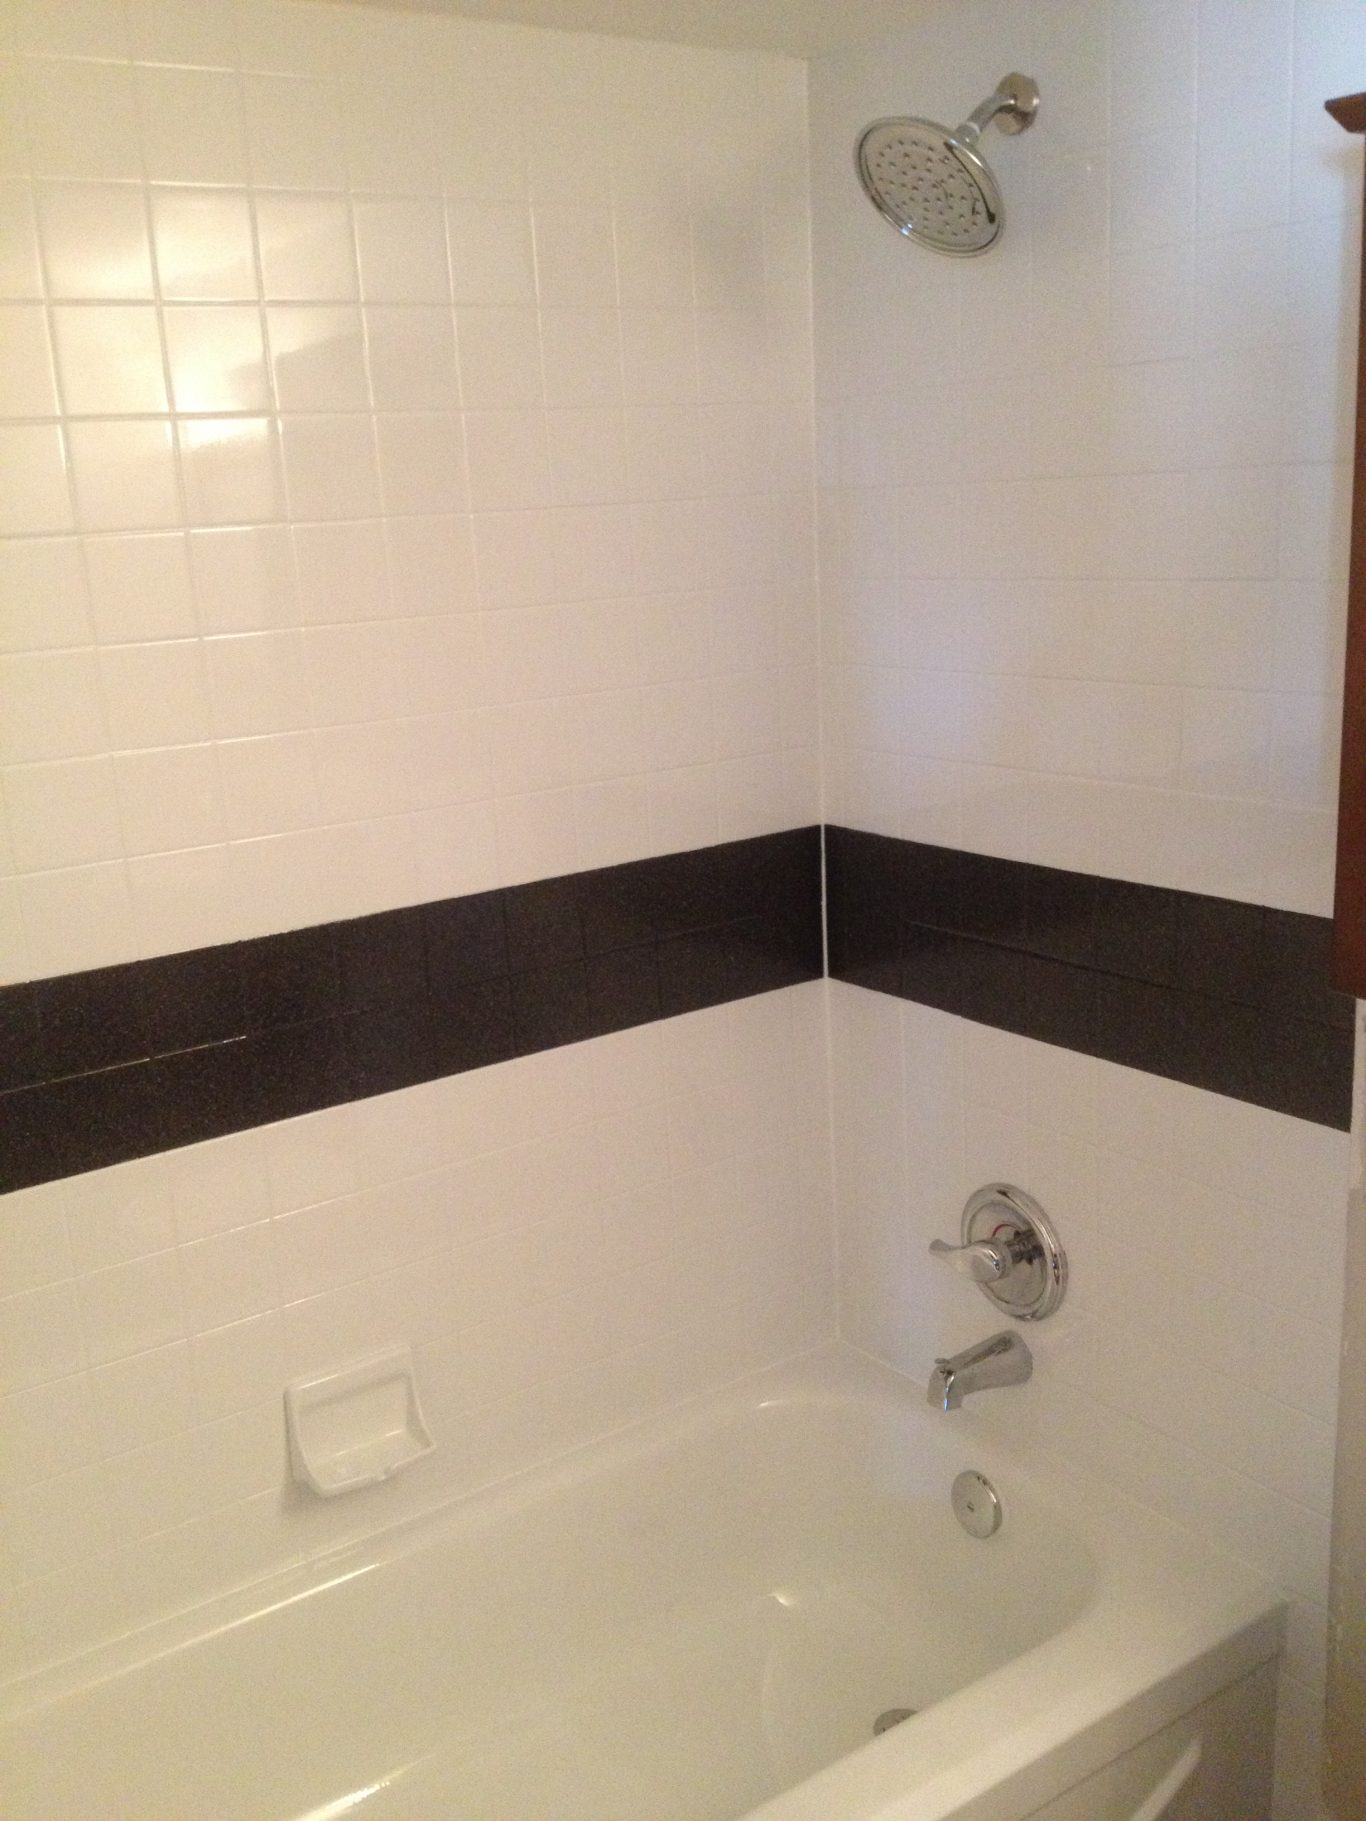 After-Black Stripe Bathtub Tile Surround